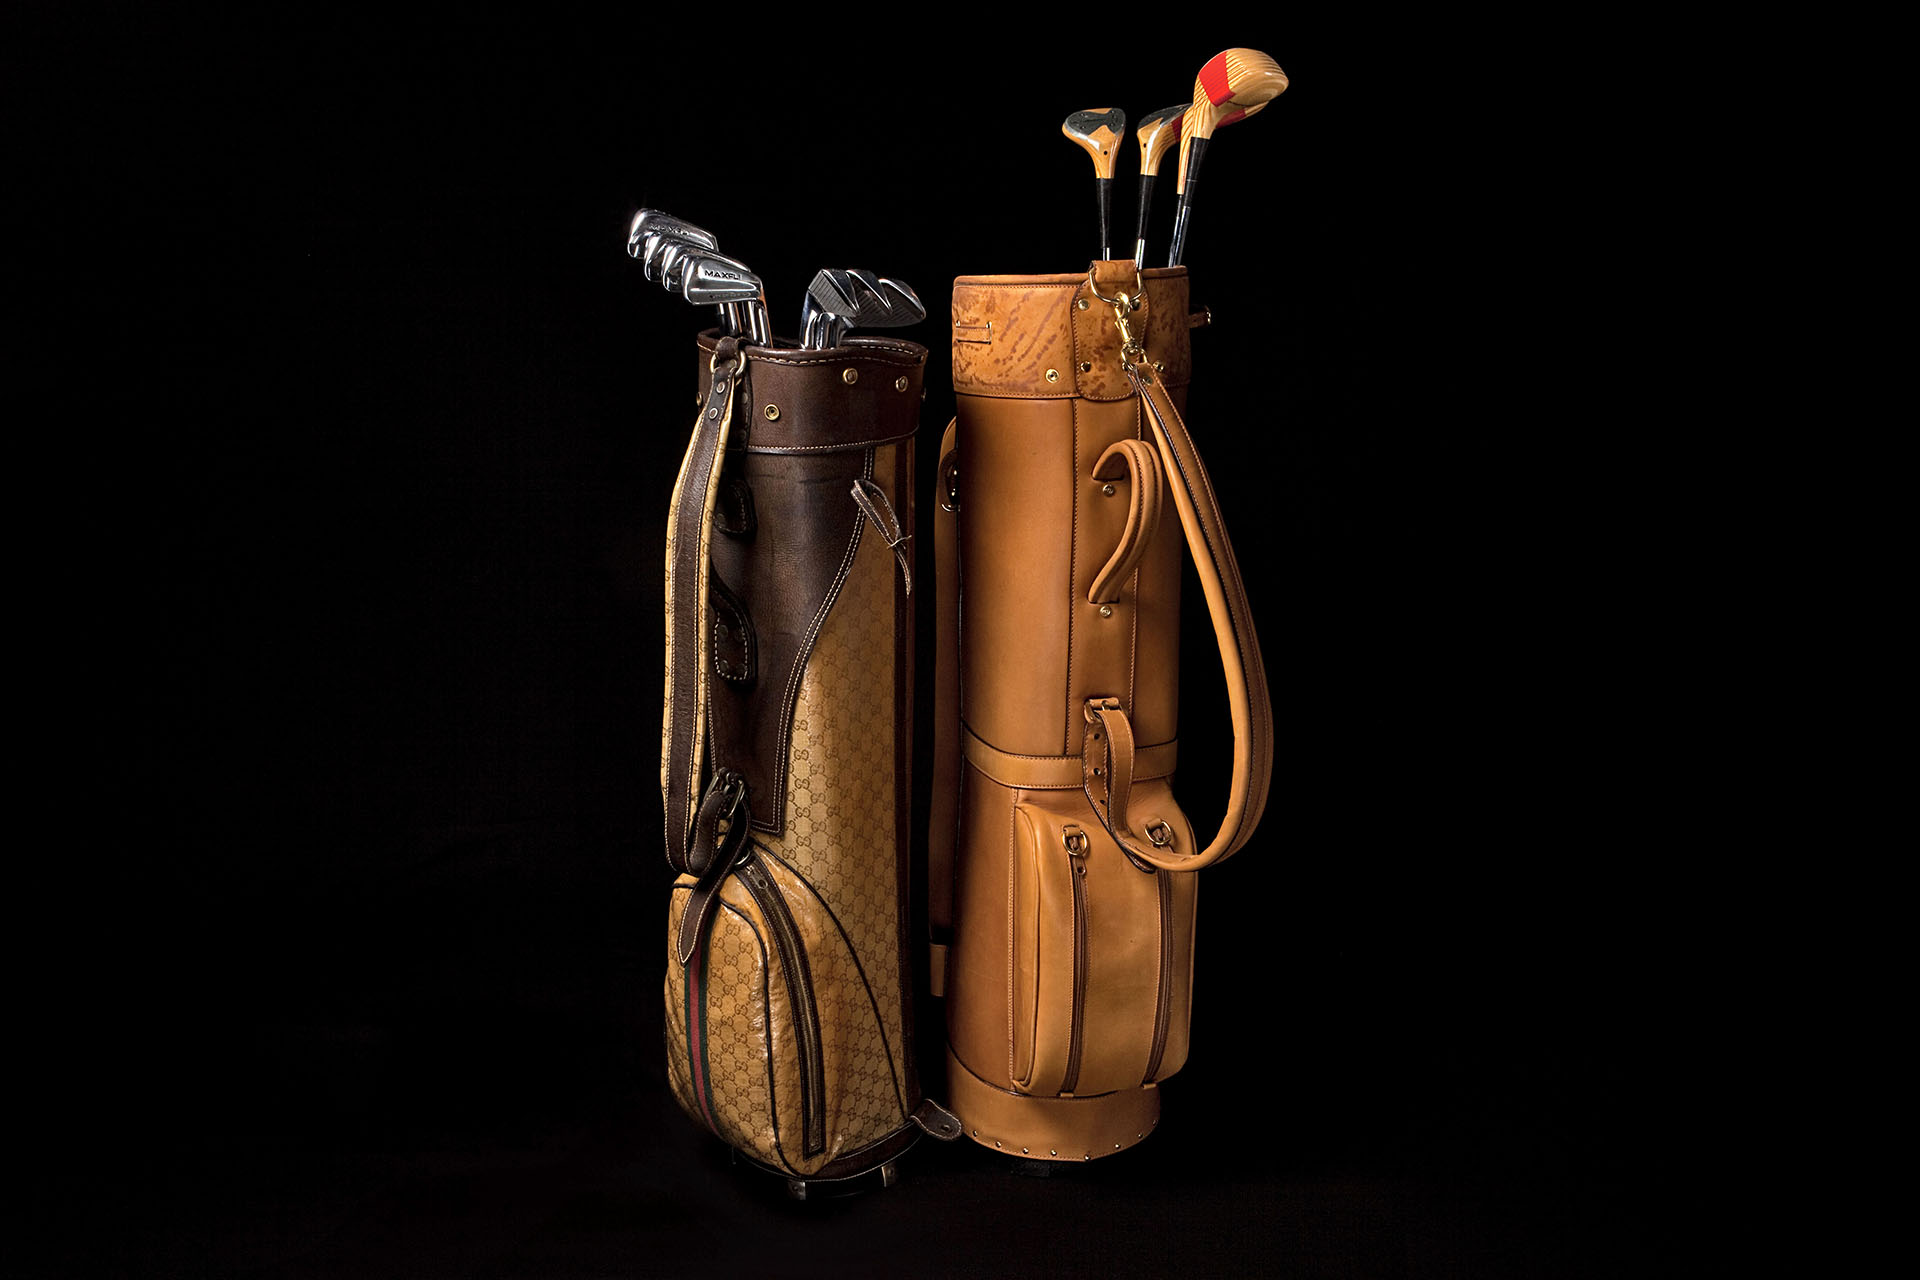 Golf GUCCI - Photo: © Andrea Pisapia / Spazio Orti 14